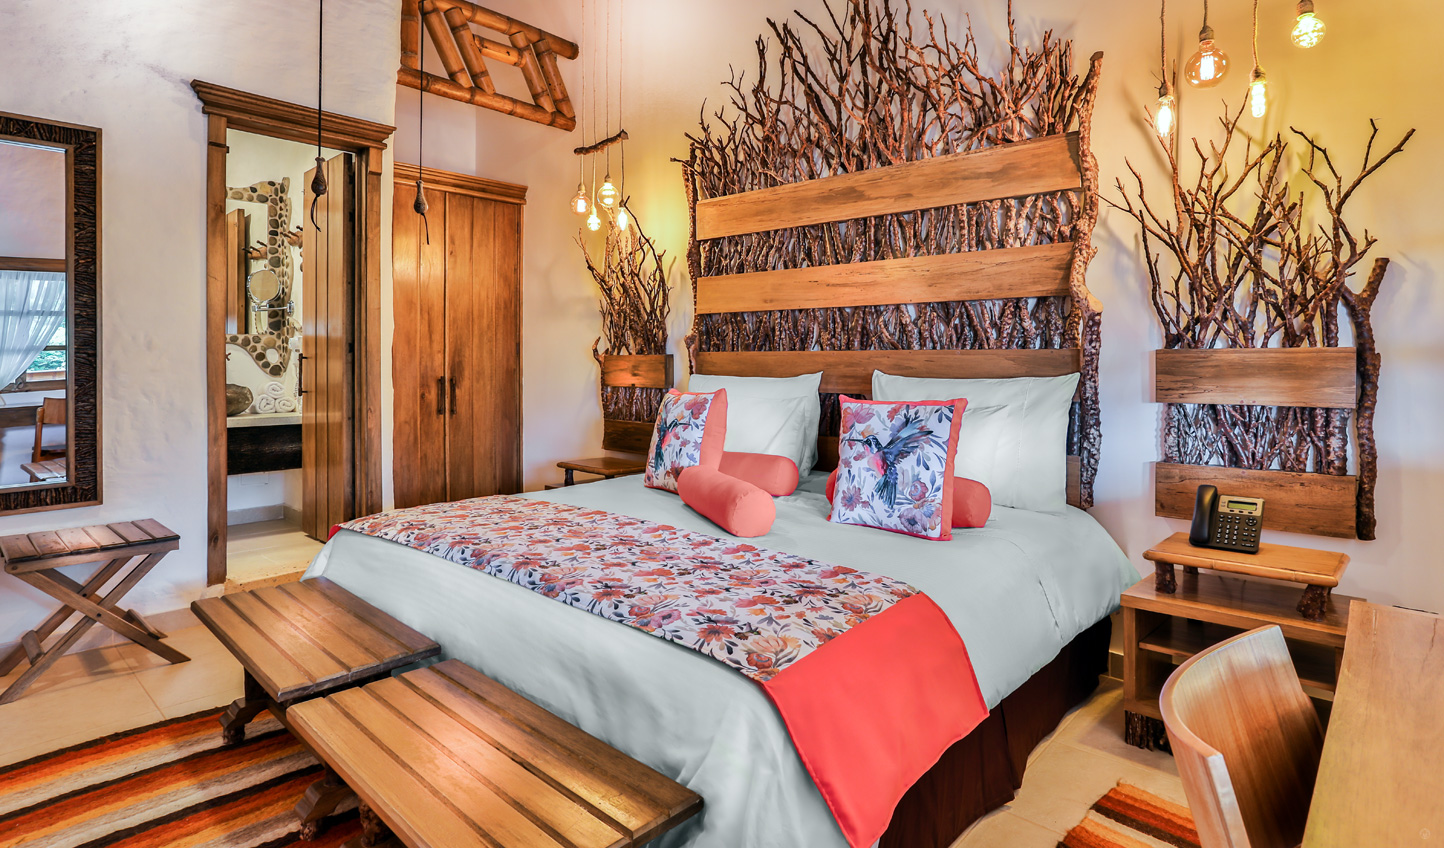 Check into your stylish suite at Casa San Carlos